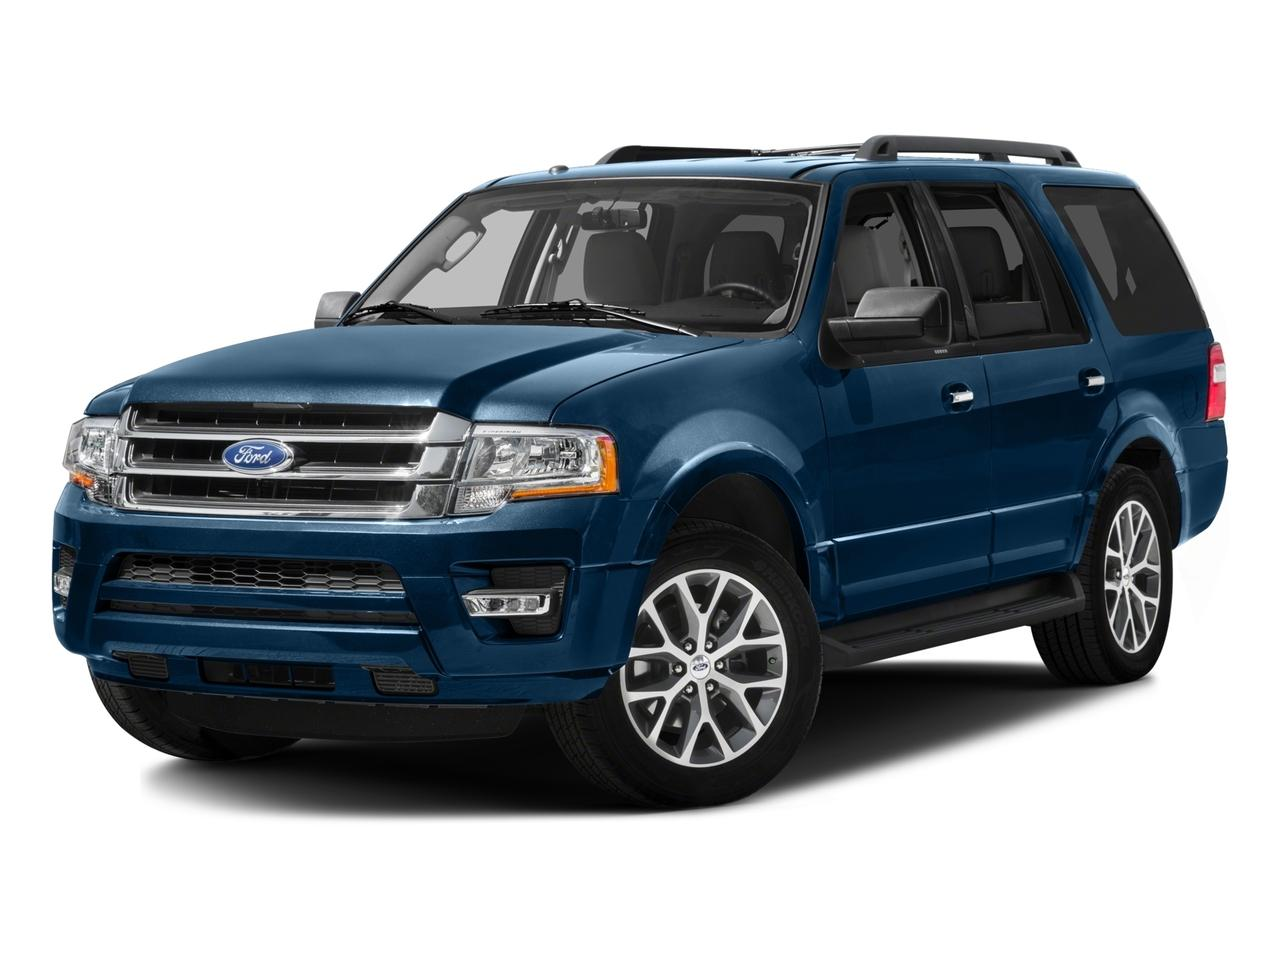 2016 Ford Expedition Vehicle Photo in San Antonio, TX 78257